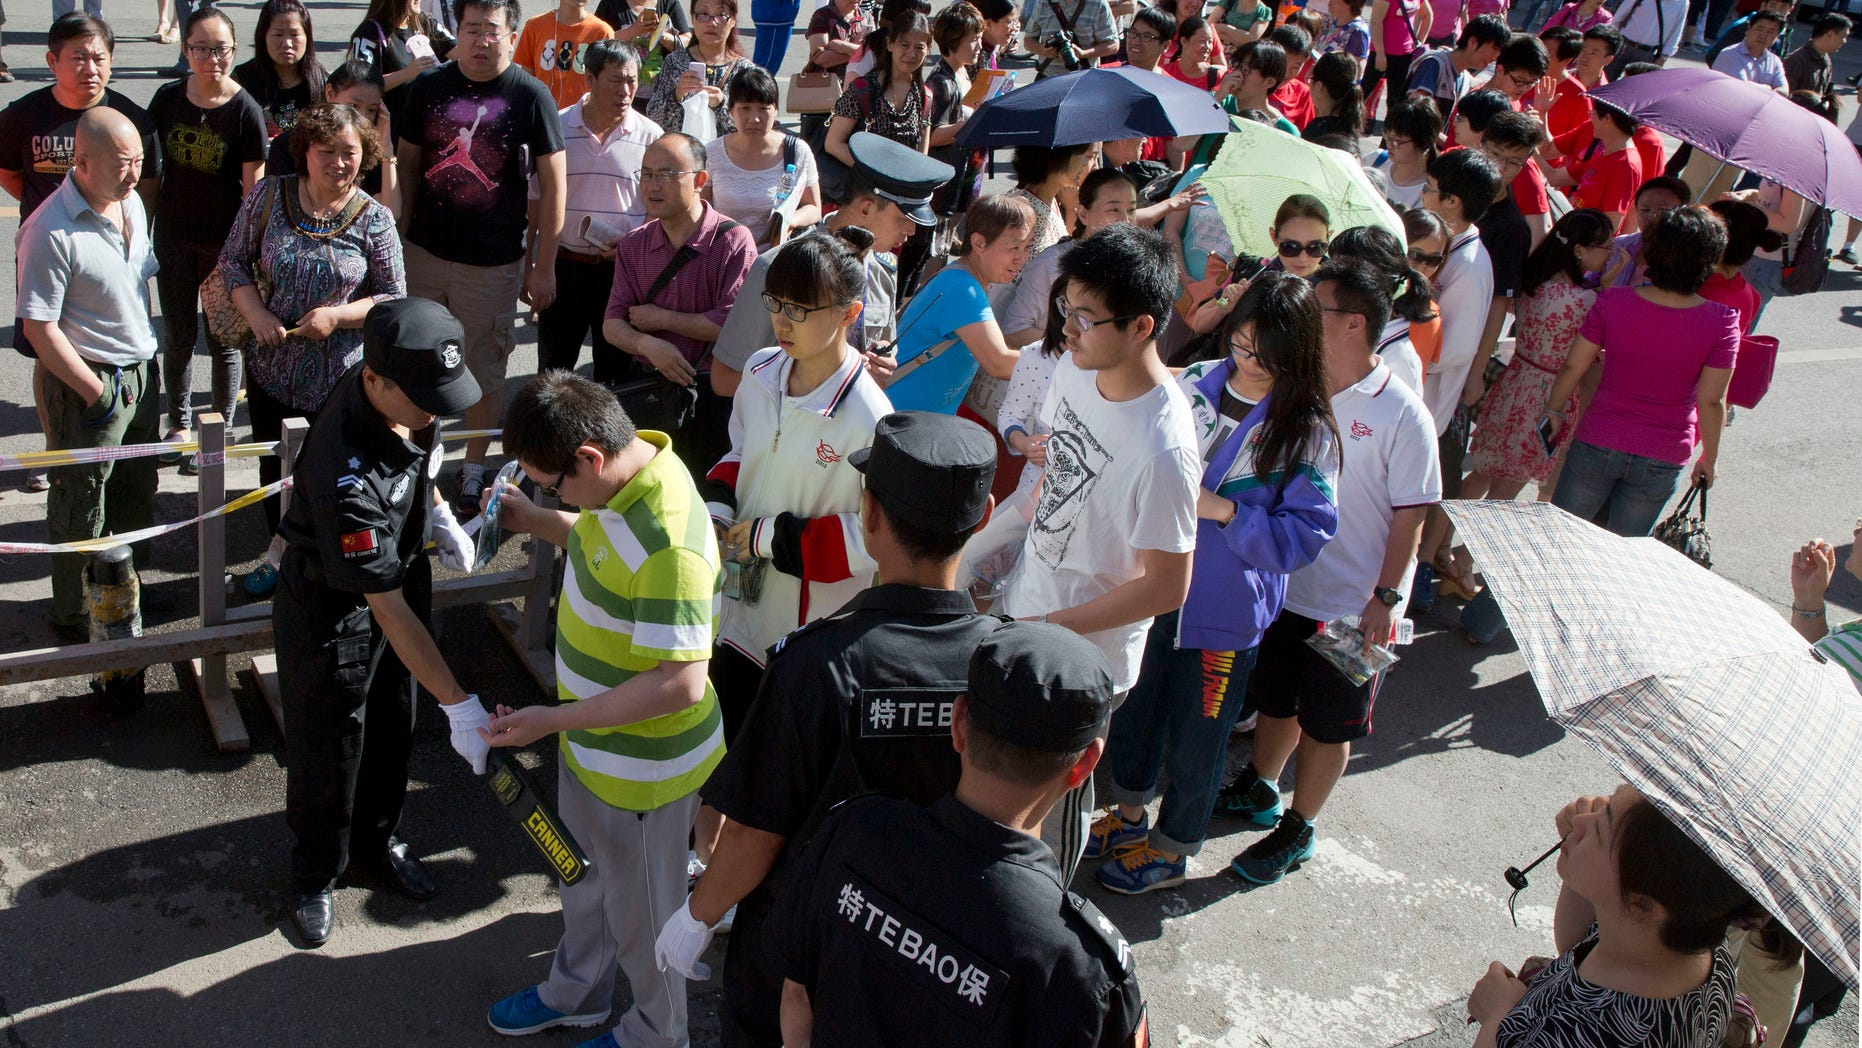 June 7, 2015 - A security guard uses a metal detector to check students arriving for the annual Gao Kao or national college entrance exam held at a school in Beijing. More than 9 million Chinese students will compete in the 2-day exams for around 7 million seats in the nation's colleges.